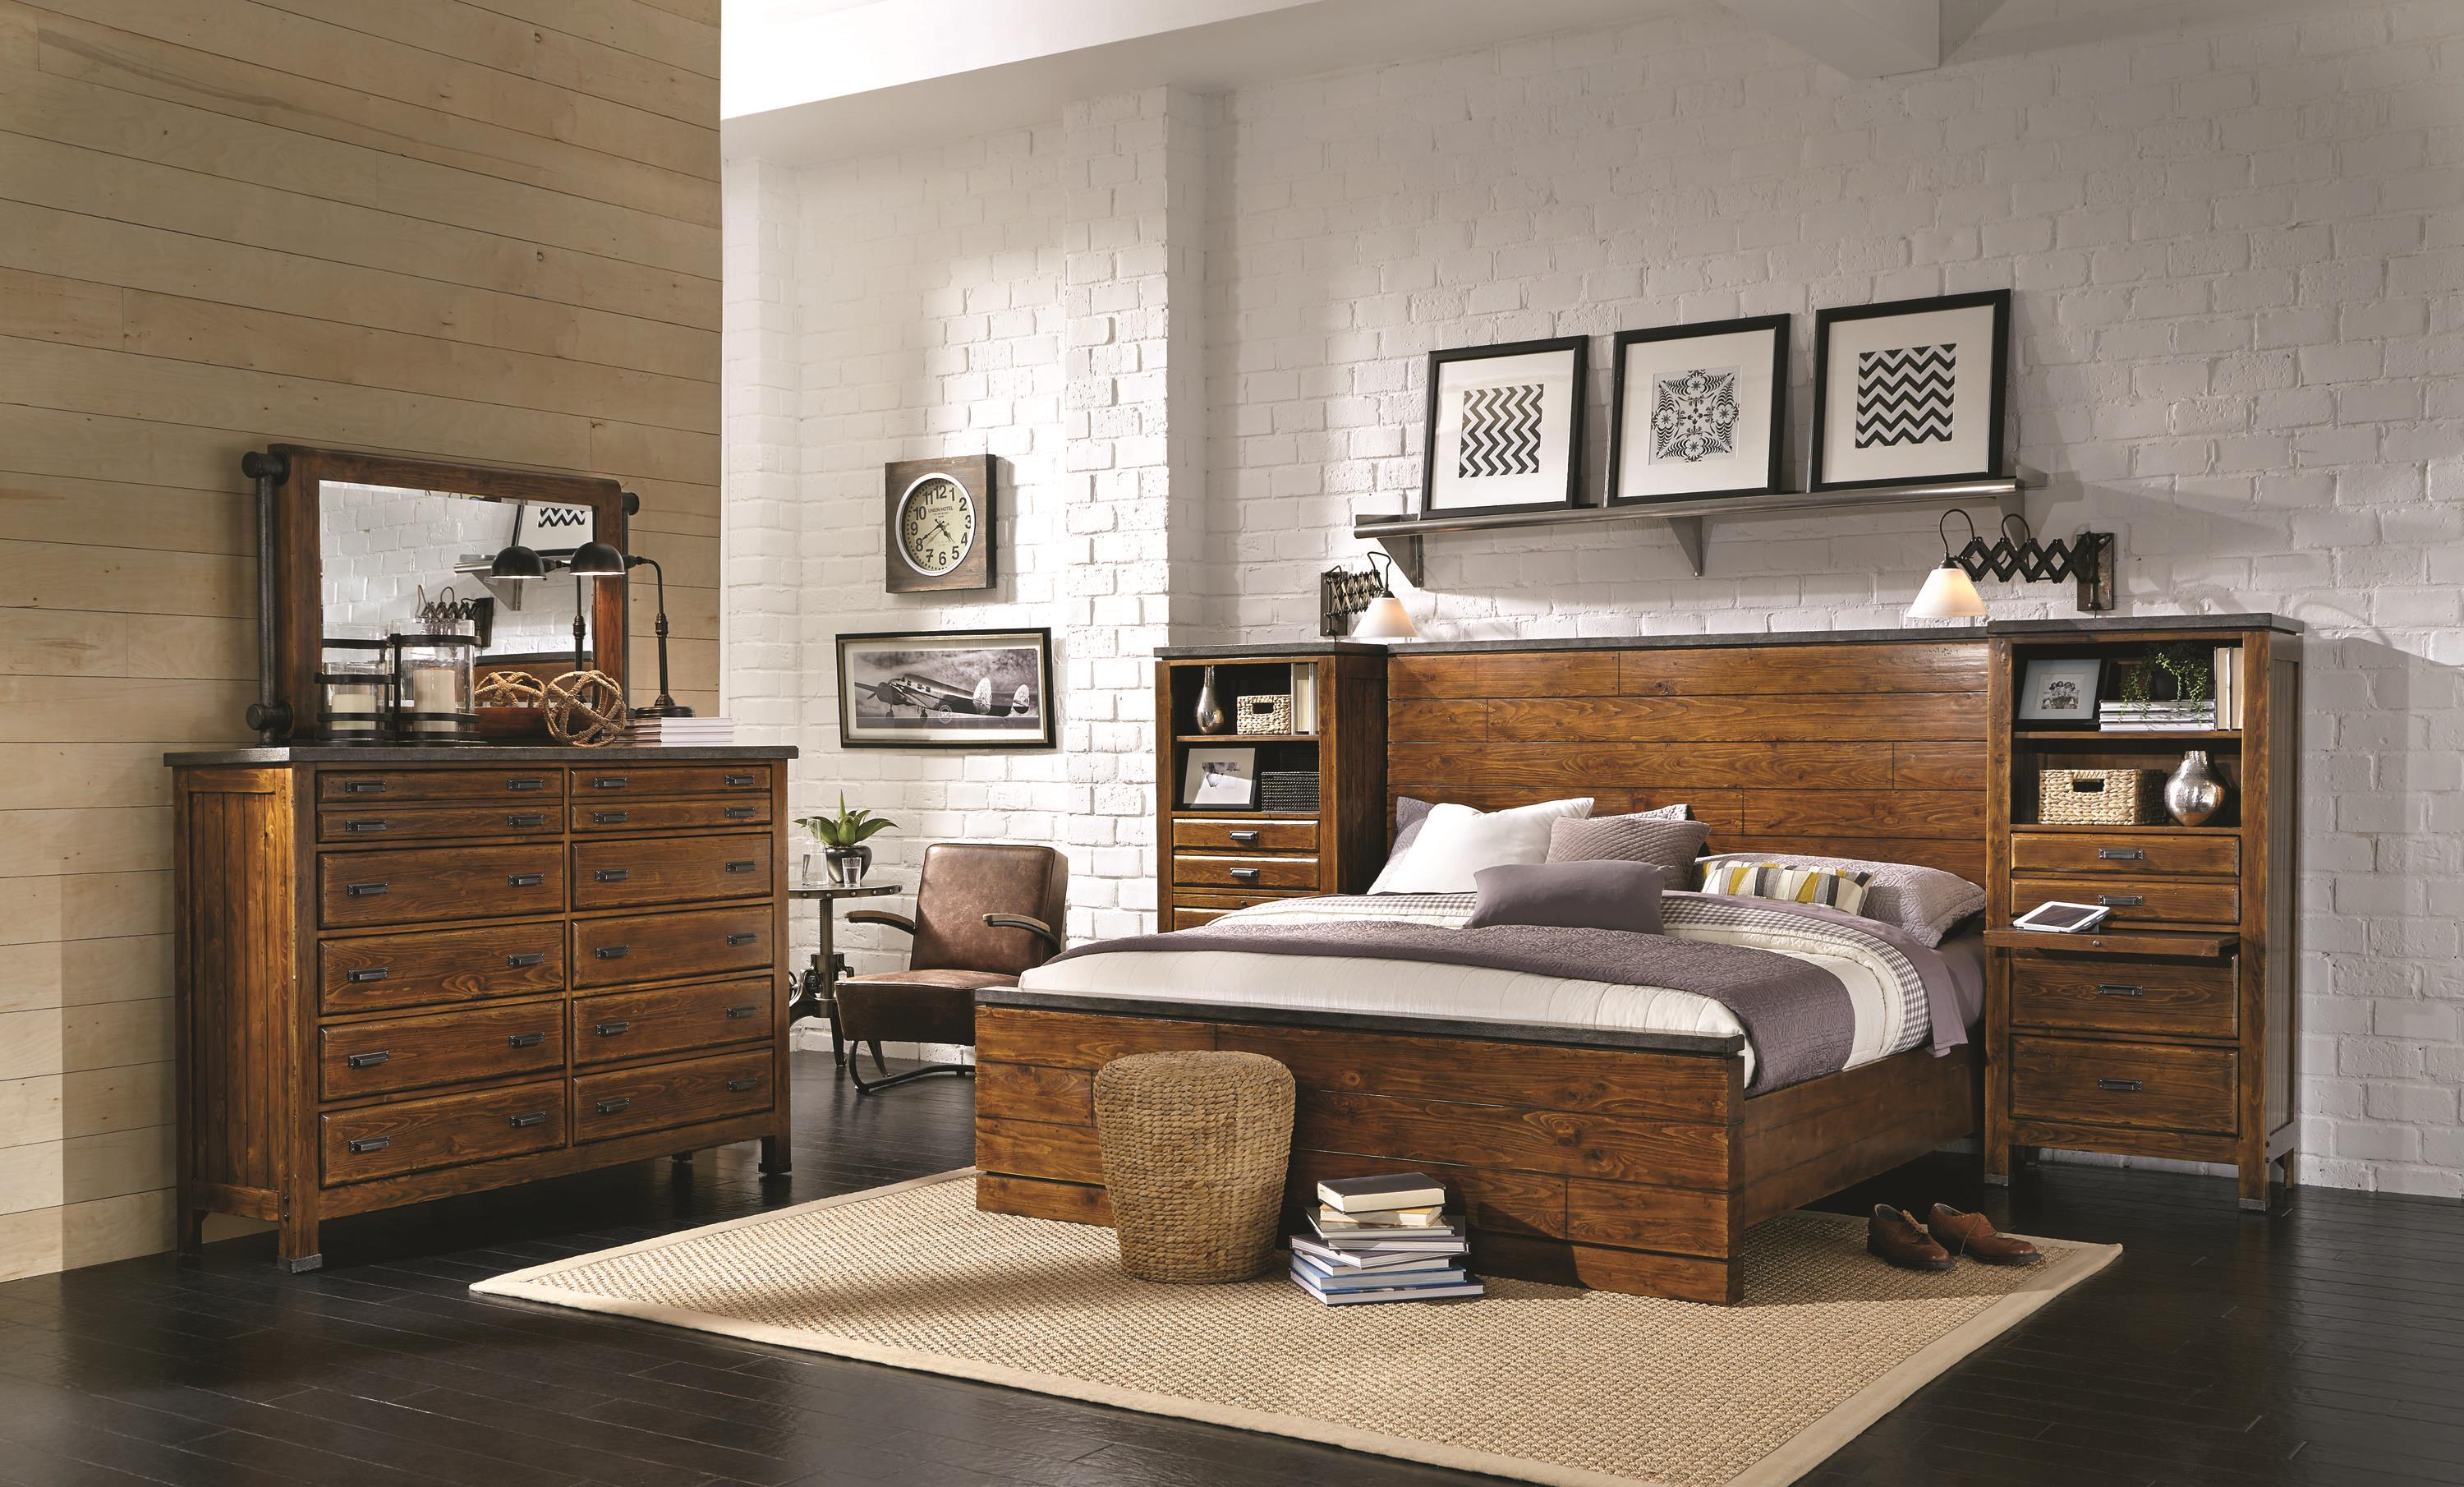 Aspenhome Rockland Queen Bedroom Group - Item Number: I58 Q Bedroom Group 5